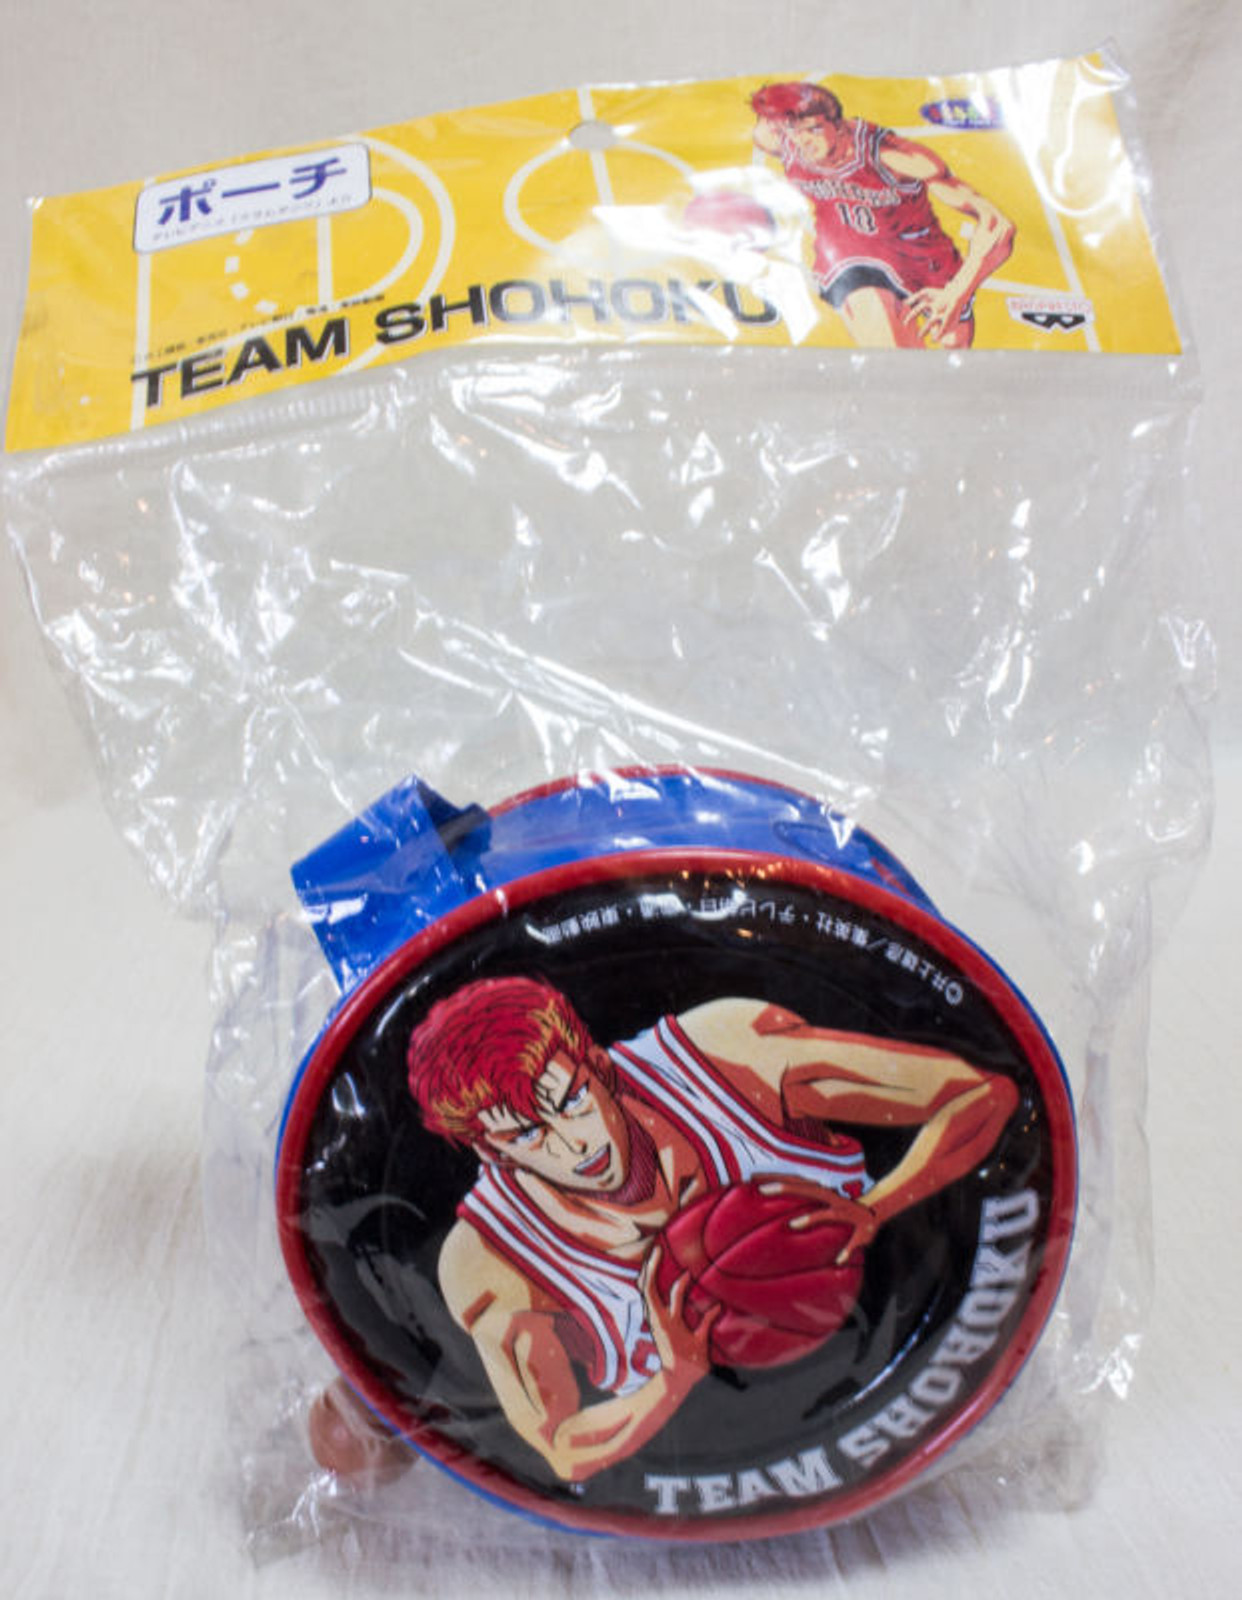 Slam Dunk Team Shohoku Sakuragi Pouch Mini Bag Banpresto JAPAN ANIME MANGA